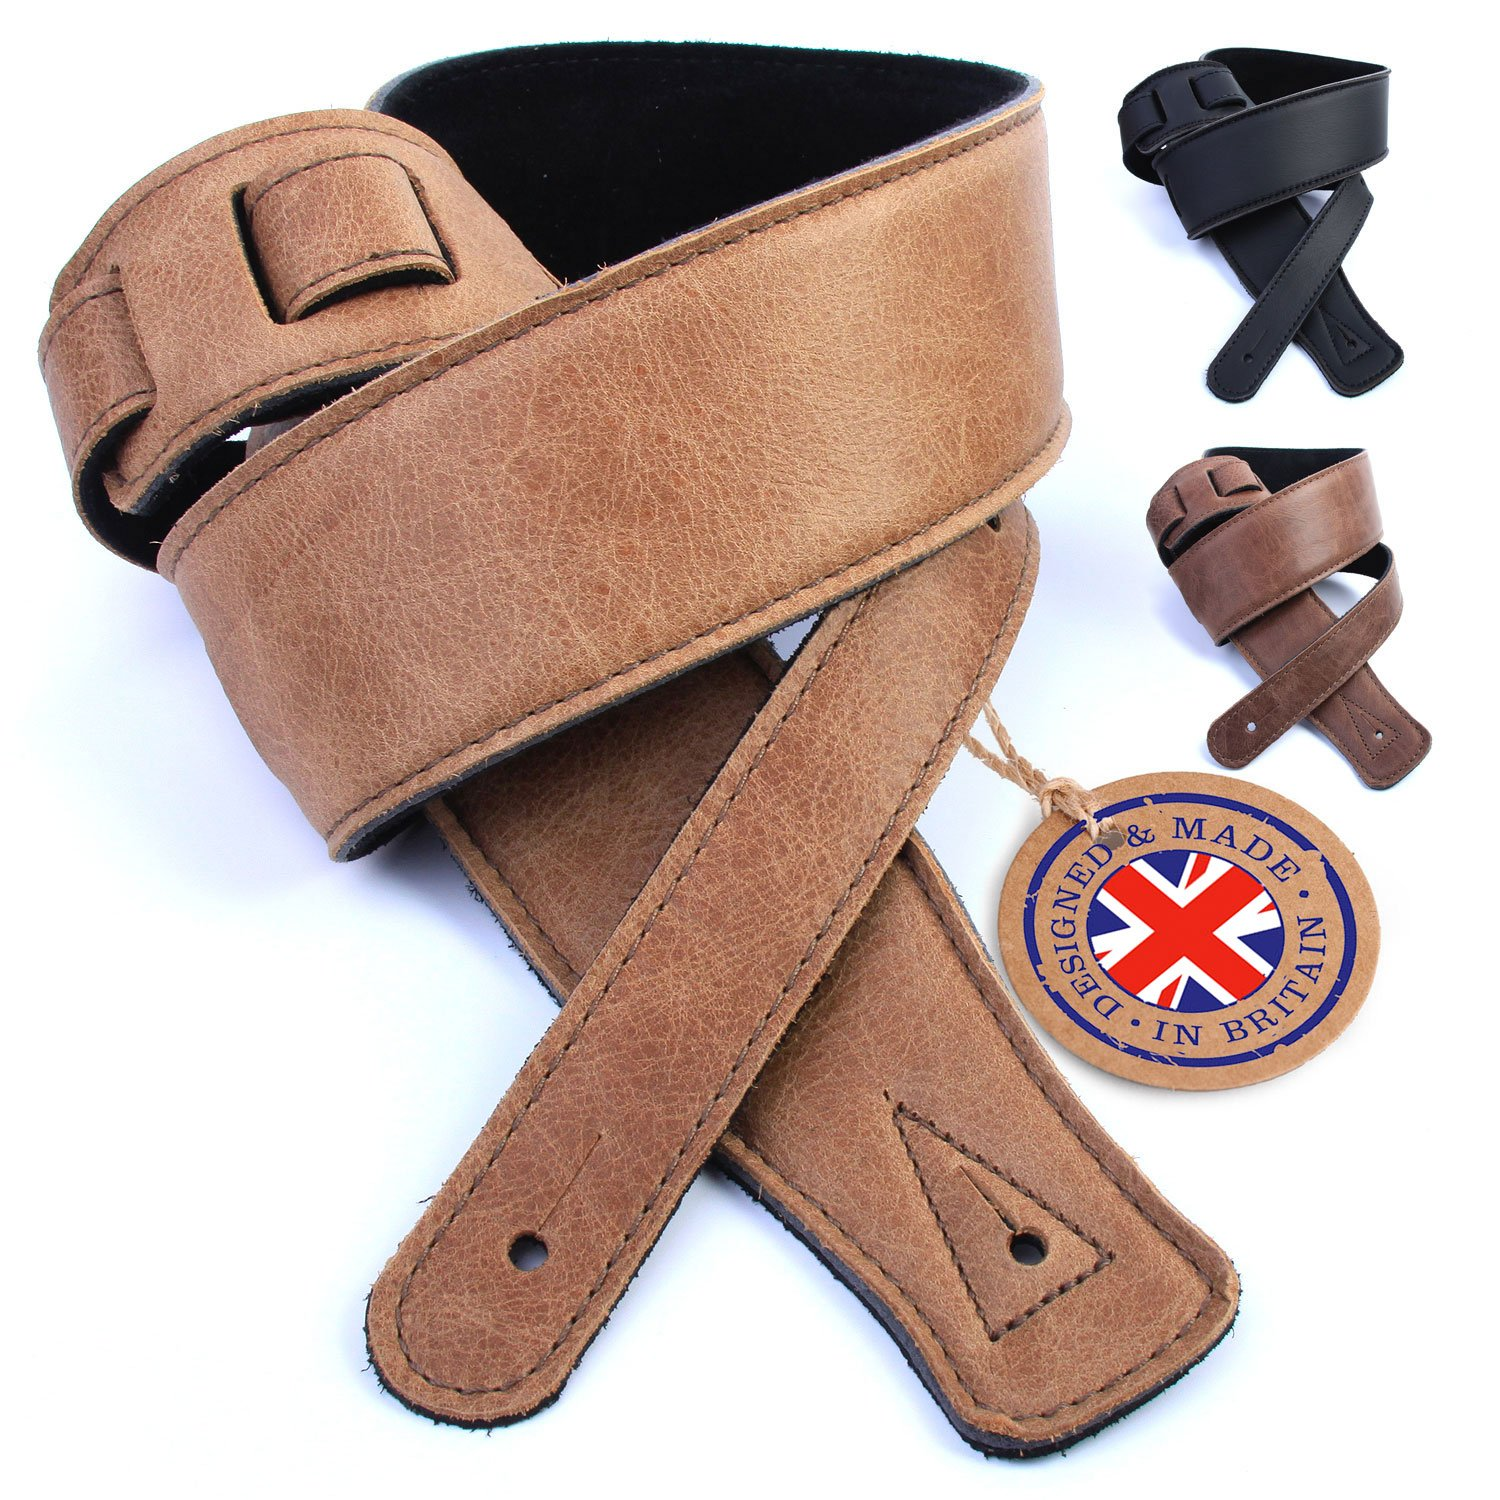 British Handmade Real Leather Guitar Strap: Finest Ultra Soft Italian Nappa Leather, 148cm long Foam Cushion Padded Guitar Belt - Suits Electric, Bass or Acoustic Instruments (inc Semi/Electro) Nordell